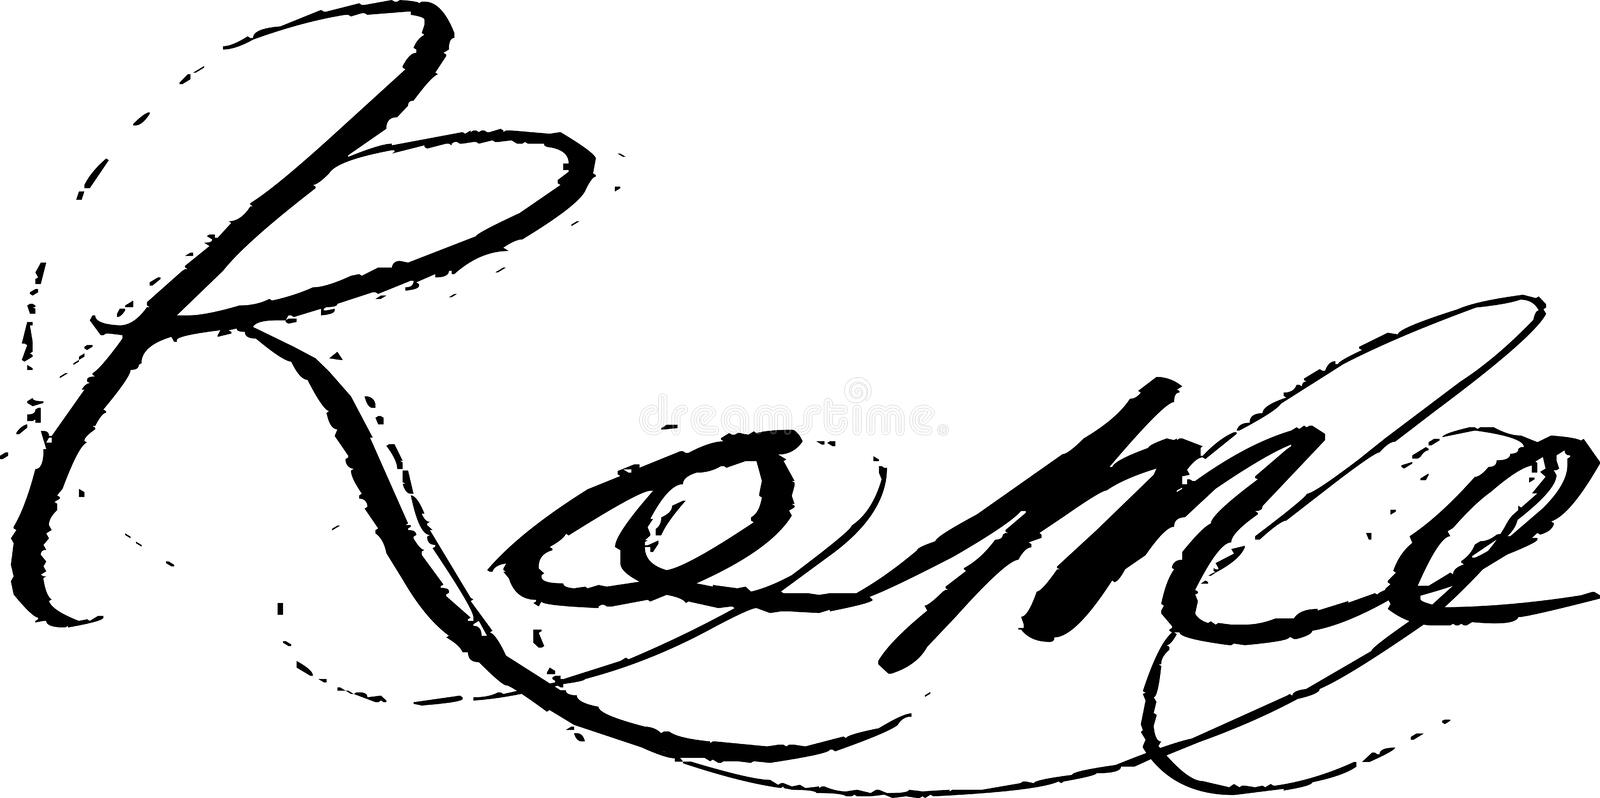 Rome in cursive writing. The word Rome written in stylish, cursive handwriting. Black and white ink stock illustration